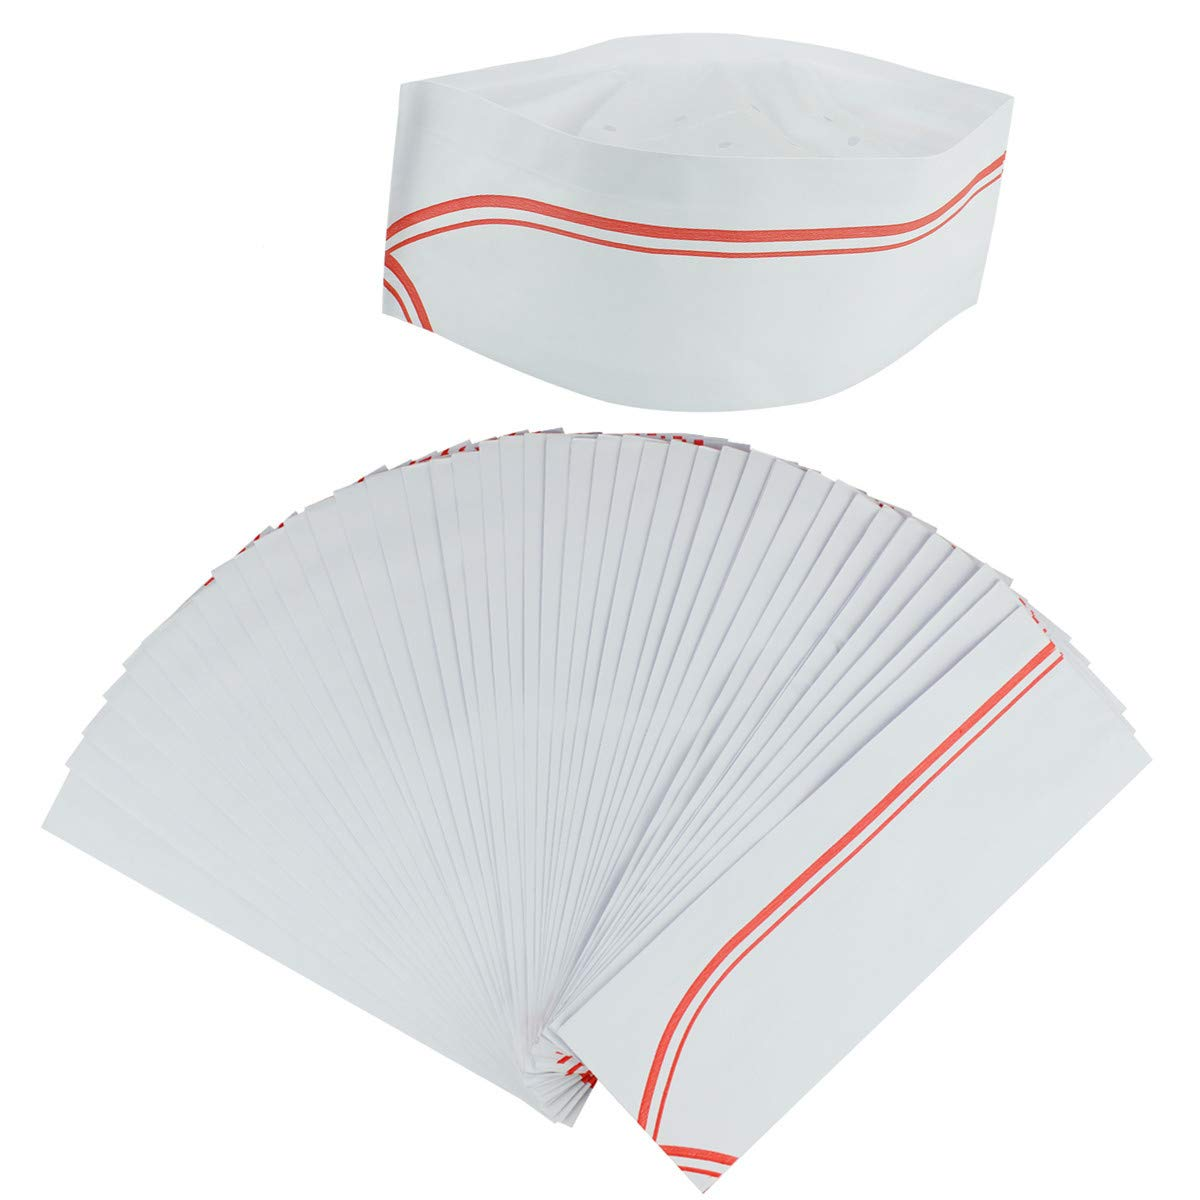 Disposable Paper Chef Hat, QYUKUYU 50 Pack Soda Jerk Hats with Red Strips,Cooking Chef Cap for Restaurants Kitchen Hotel & Party